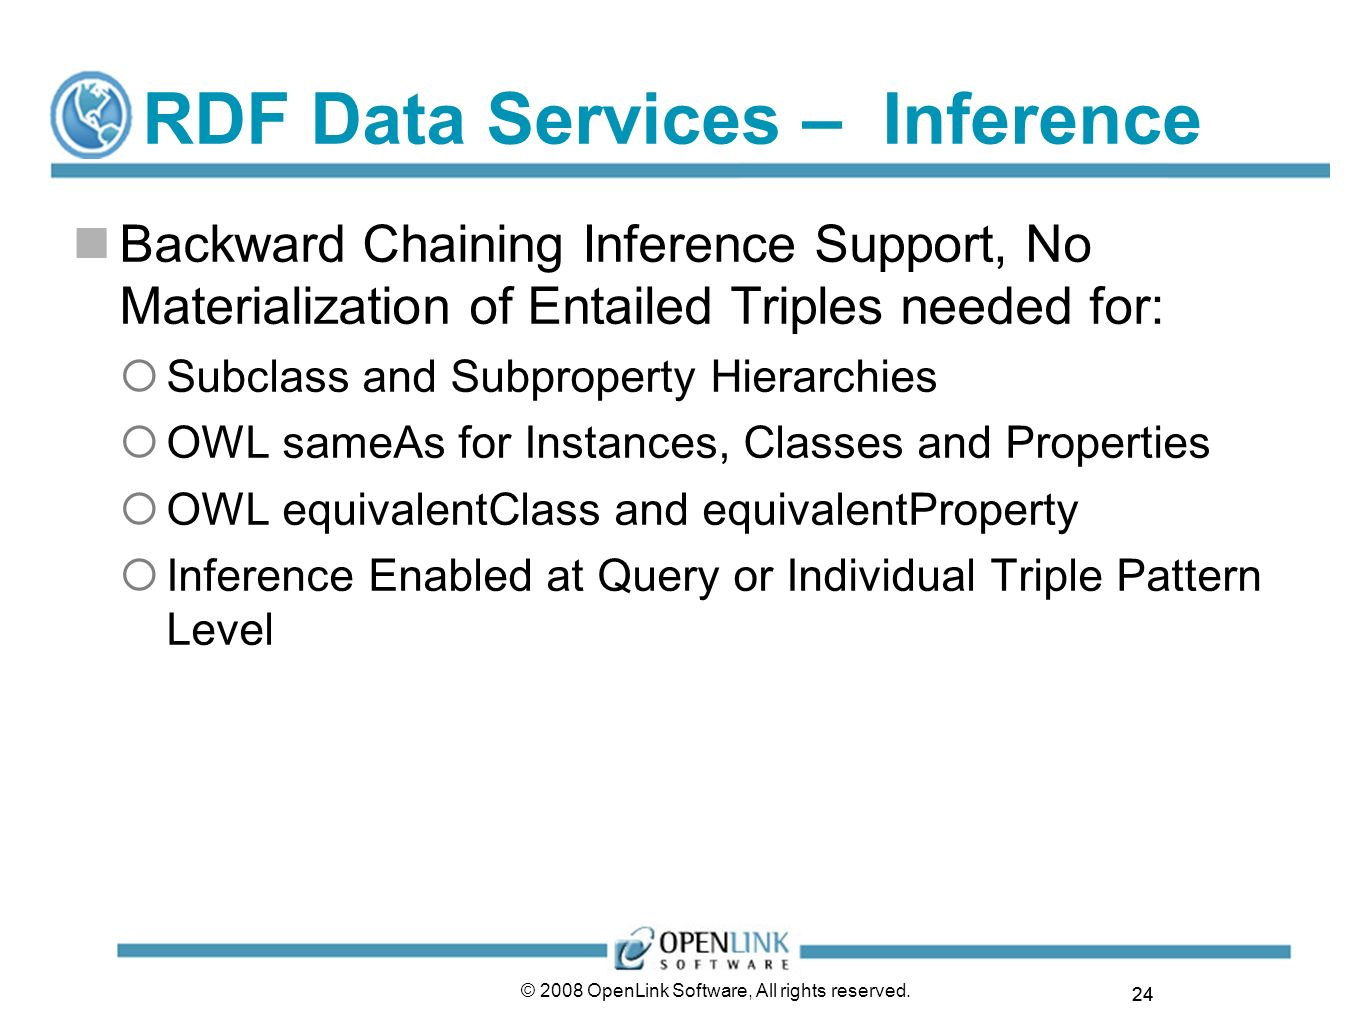 RDF Data Services – Inference